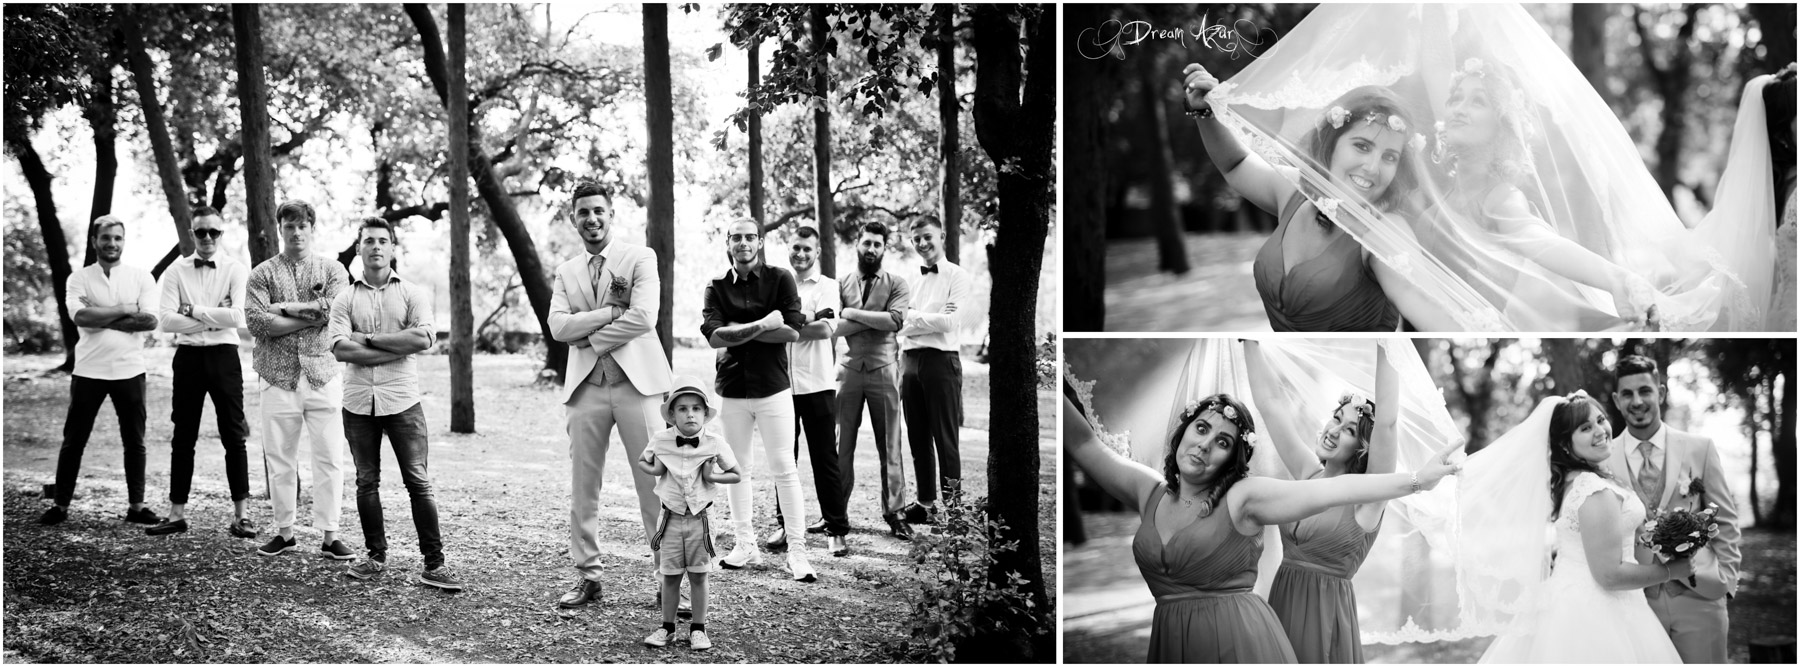 190824COMPO-Mariage-Cindy-et-Anthony-62